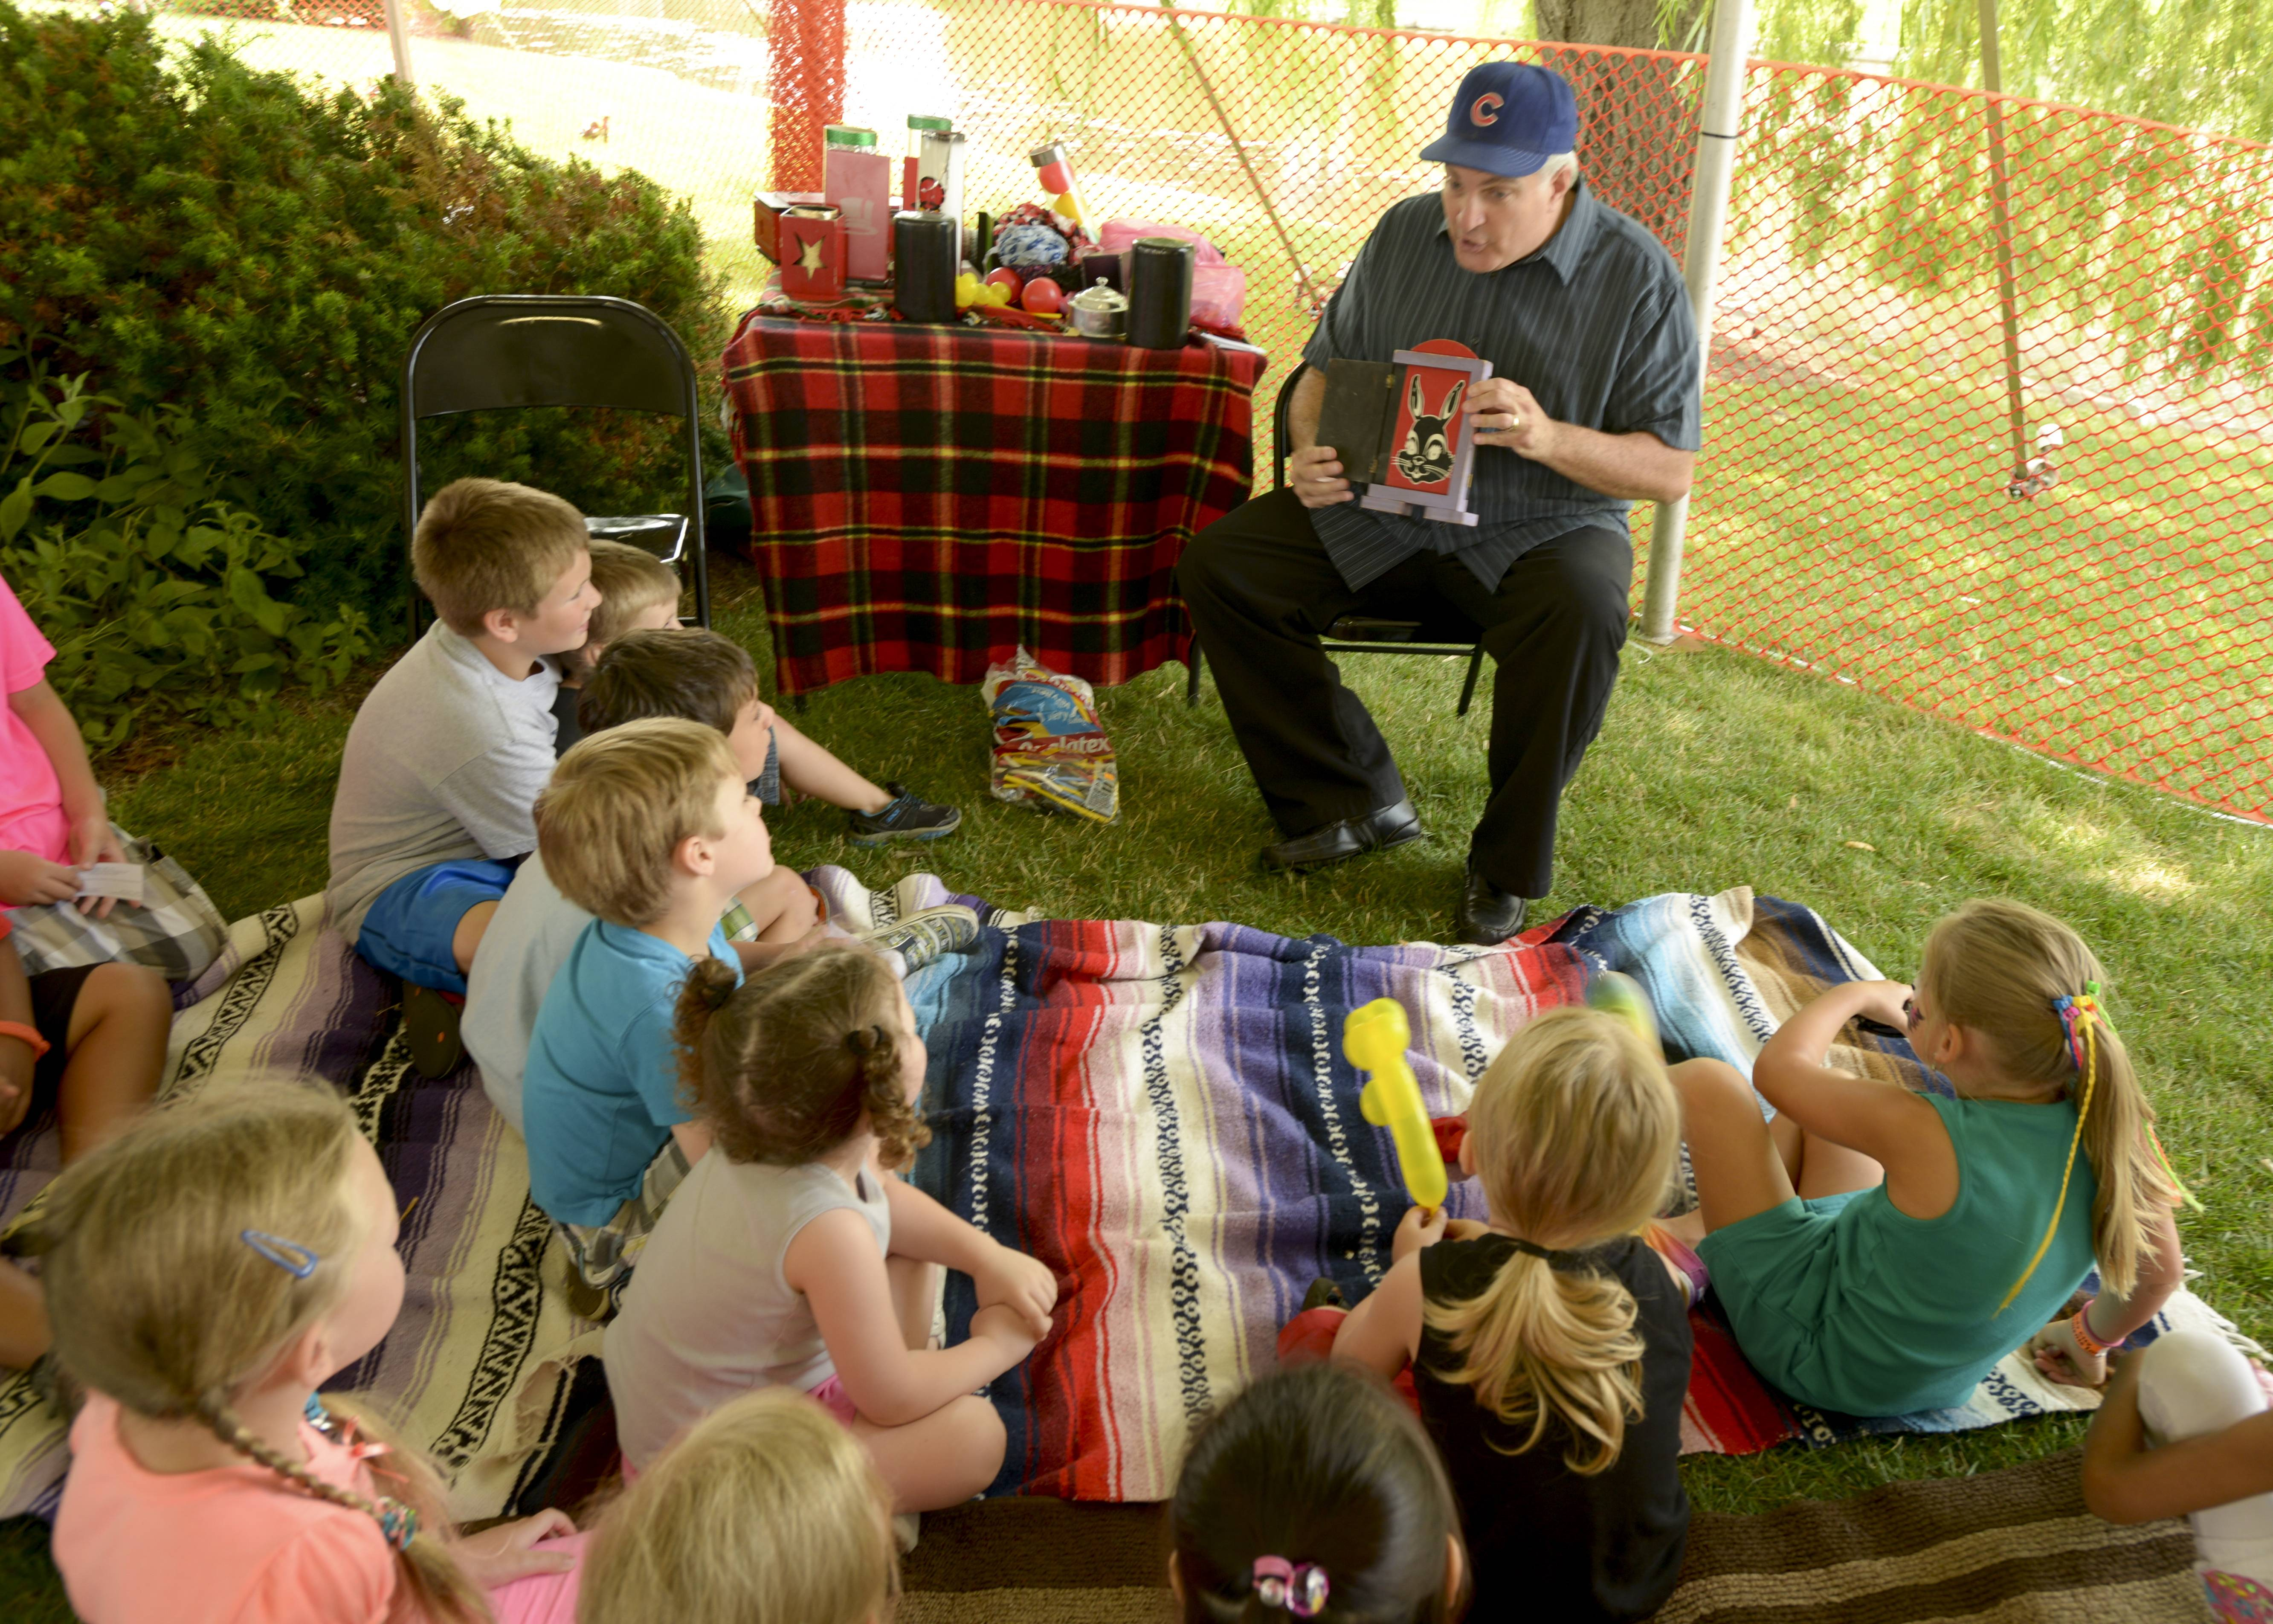 Al Brodosky presents a free magic show for children Saturday at the Vernon Hills Summer Celebration. Brodsky is a longtime Vernon Hills resident and professional magician and entertainer.